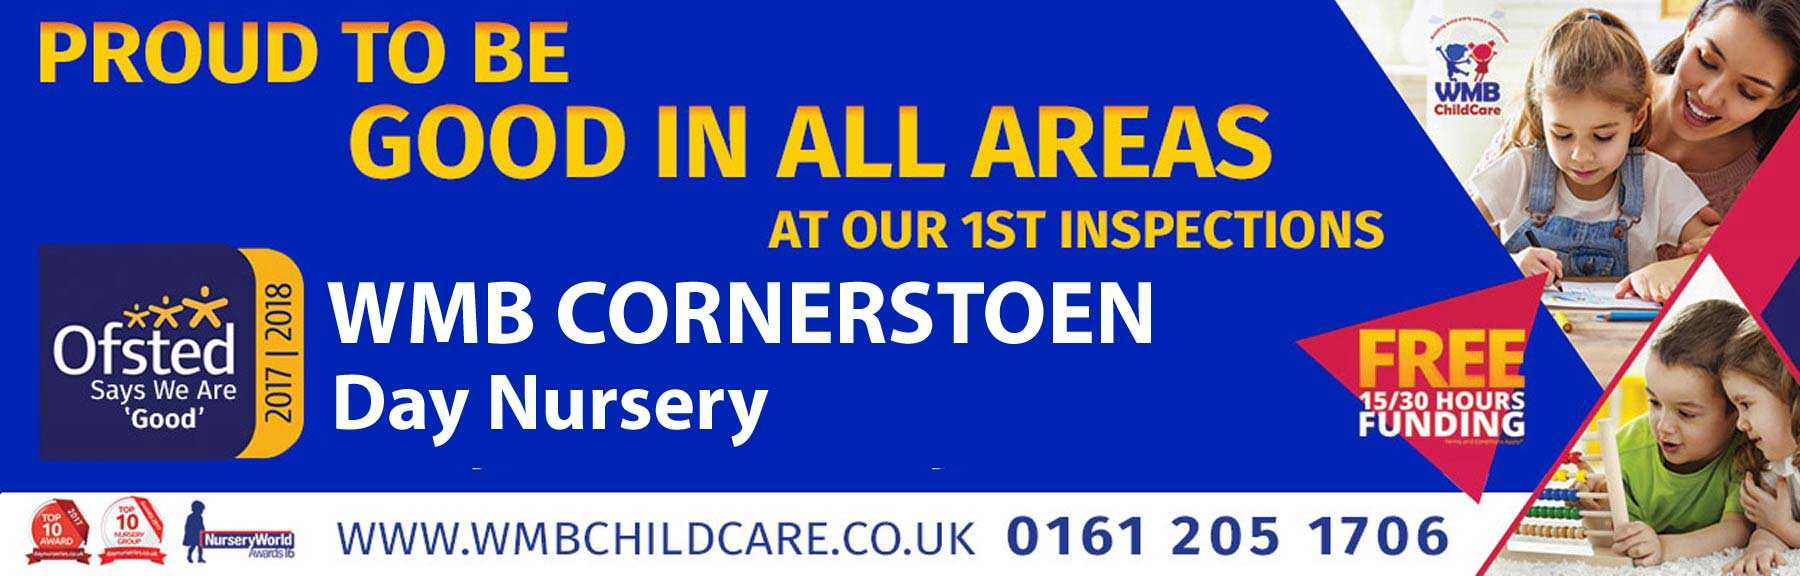 Crnerstone day nursery